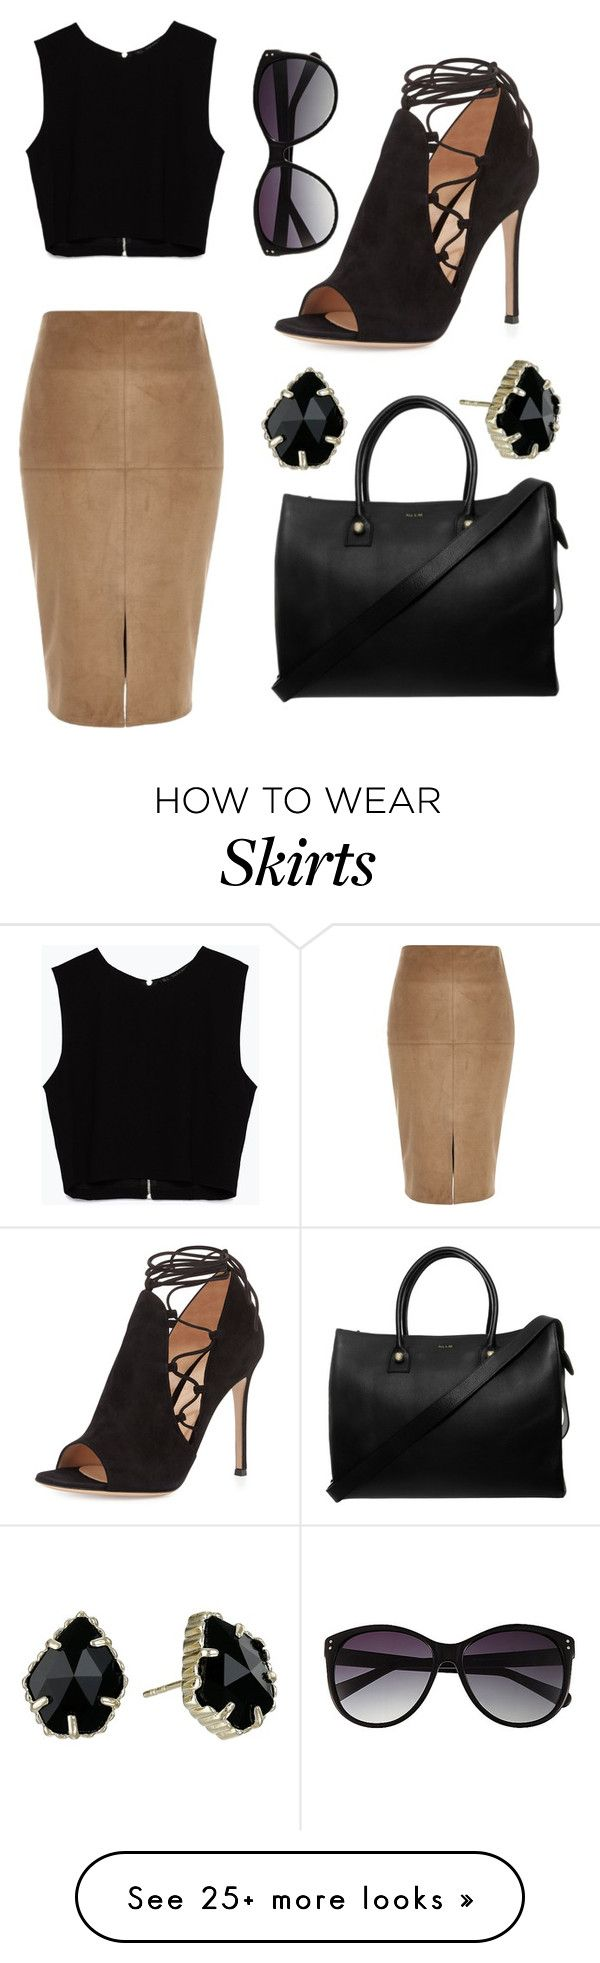 Look #34 by mode-noir on Polyvore featuring River Island, Gianvito Rossi, Zara, Paul & Joe, Vince Camuto and Kendra Scott